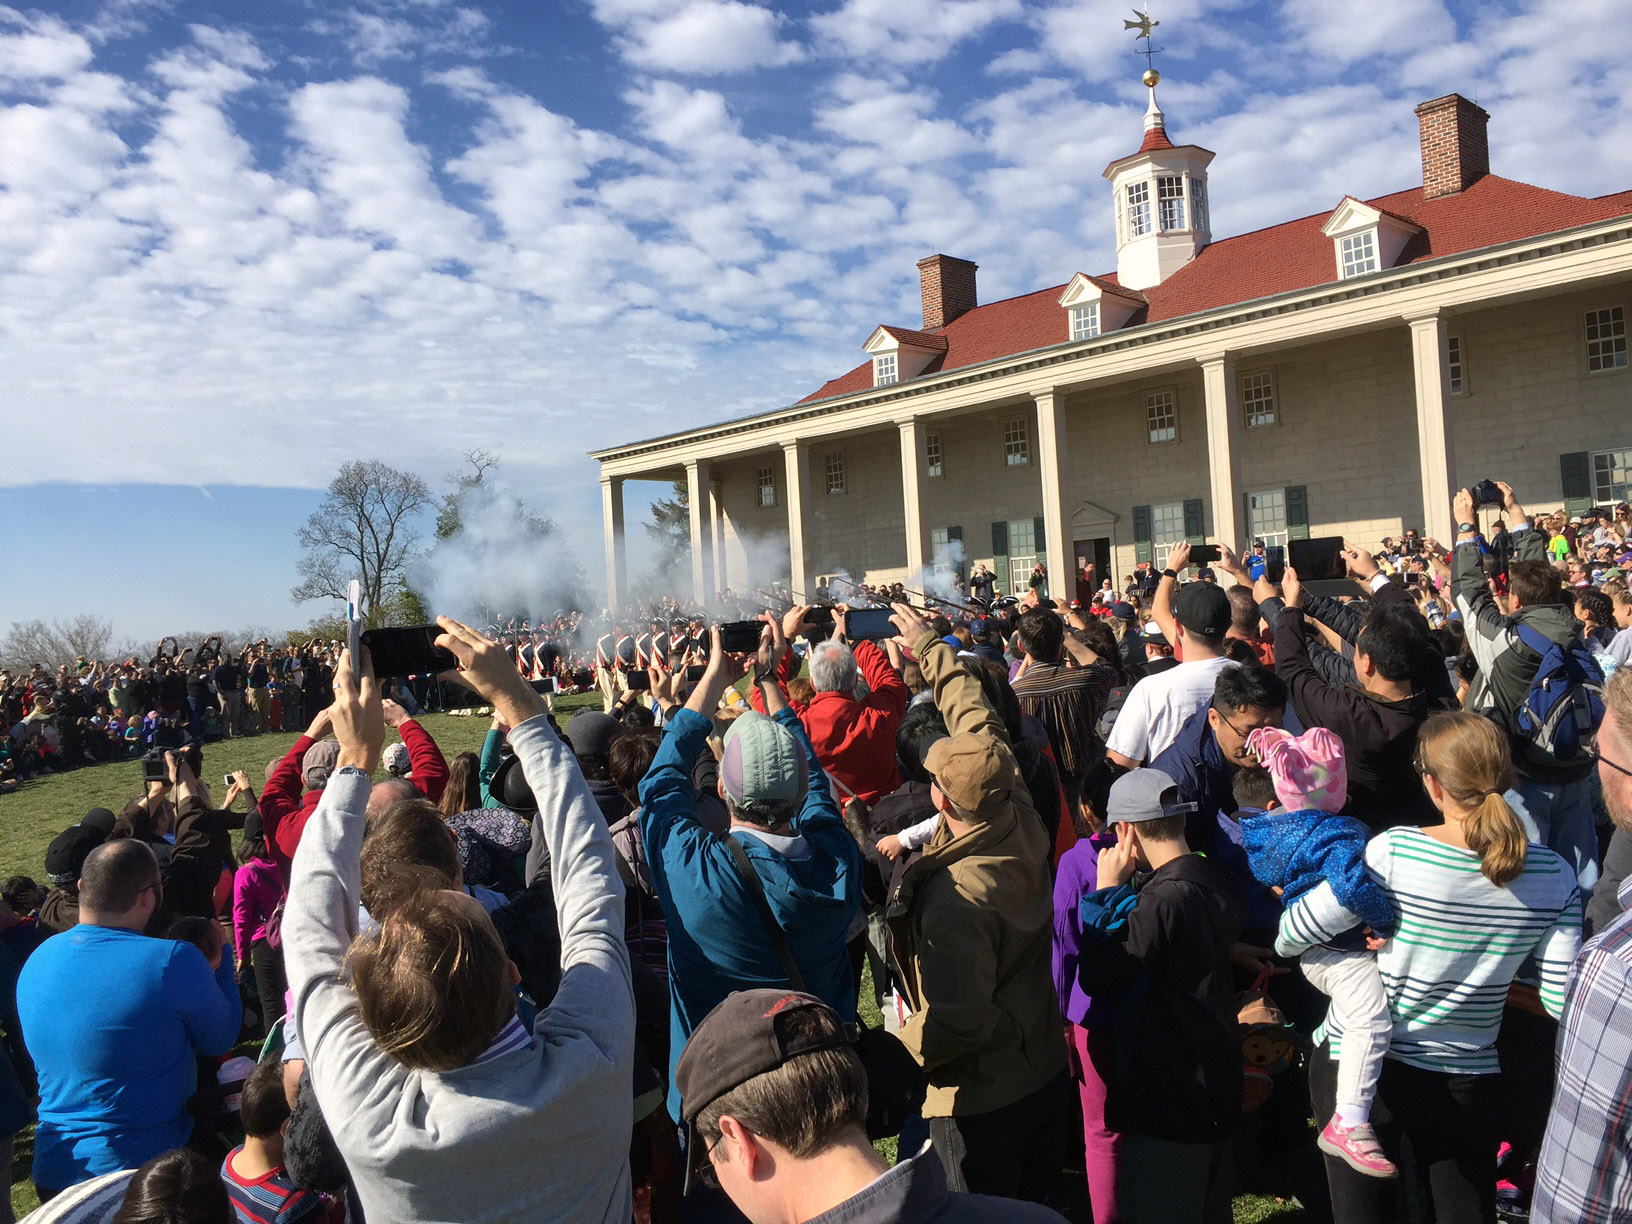 George Washington's National Birthday Celebration at Mount Vernon